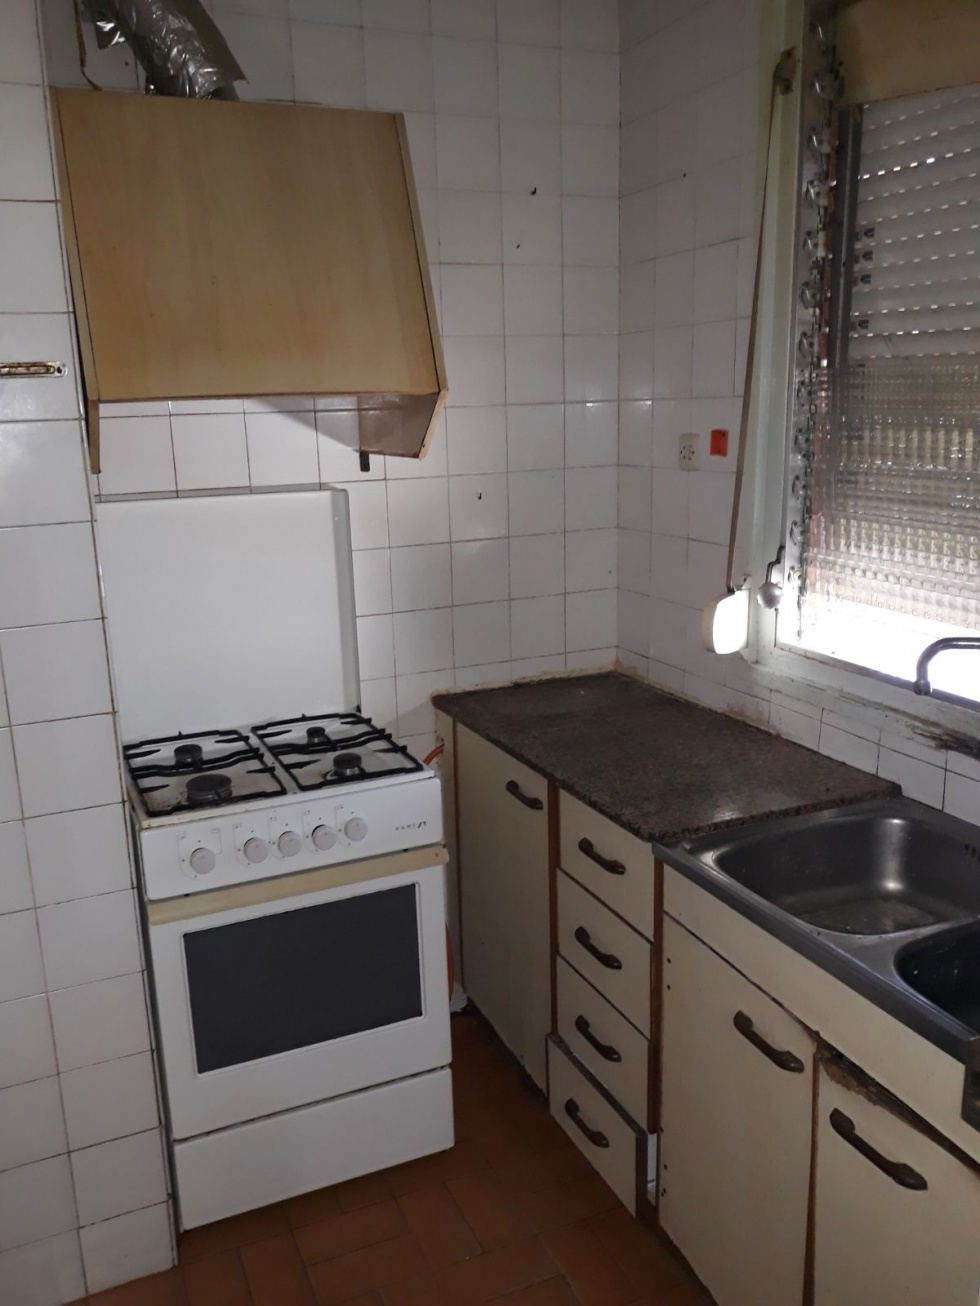 <h2>Piso en REUS <small><small>(ref.15452)</small></small></h2><h3>28.000 &euro;</h3>